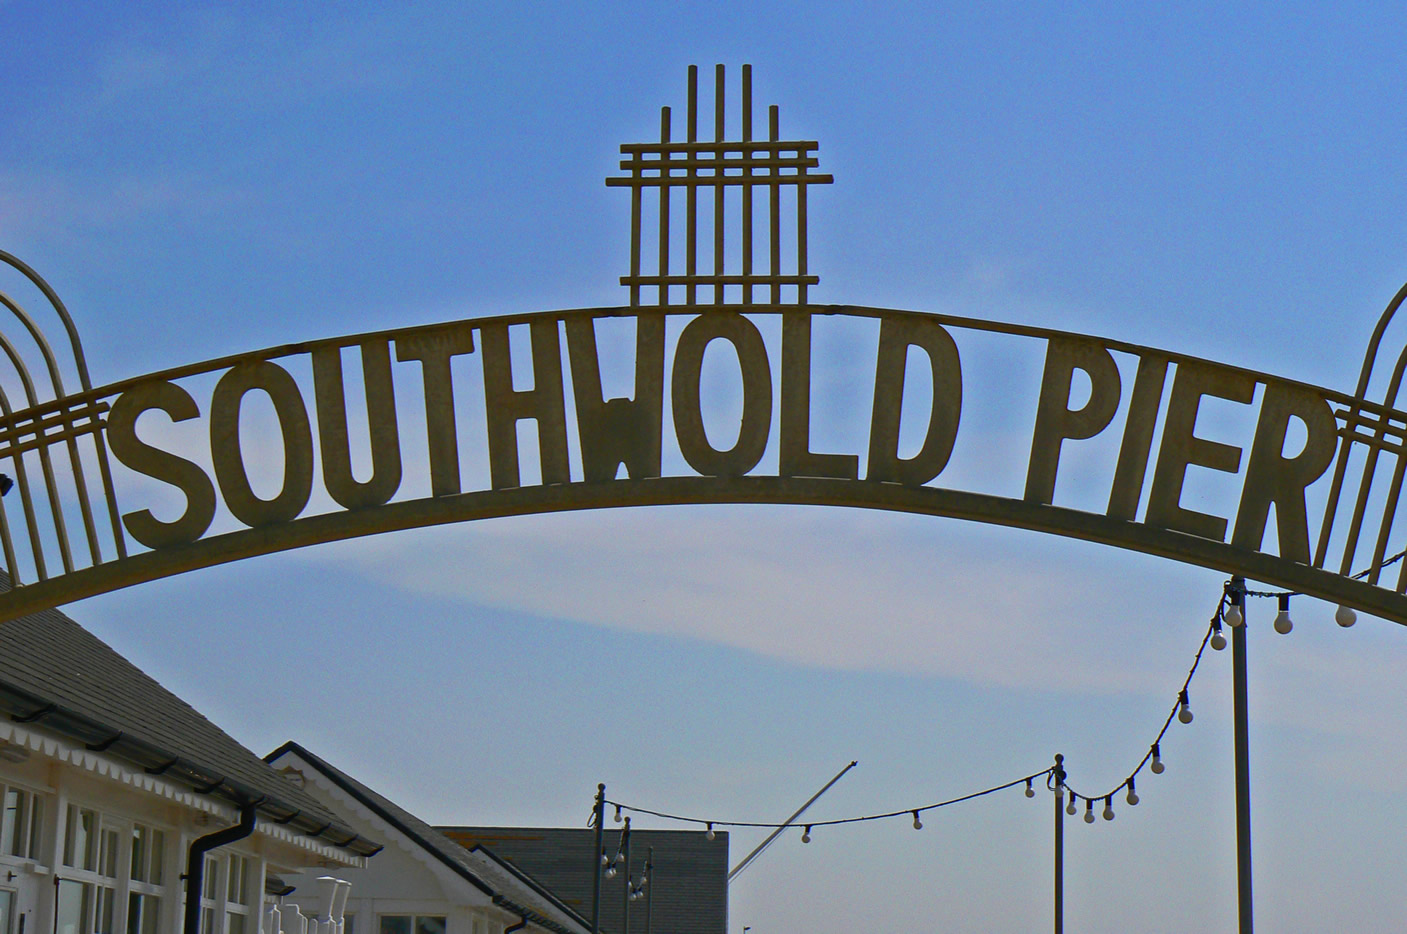 MLM - Southwold Pier Flood Risk Assessment